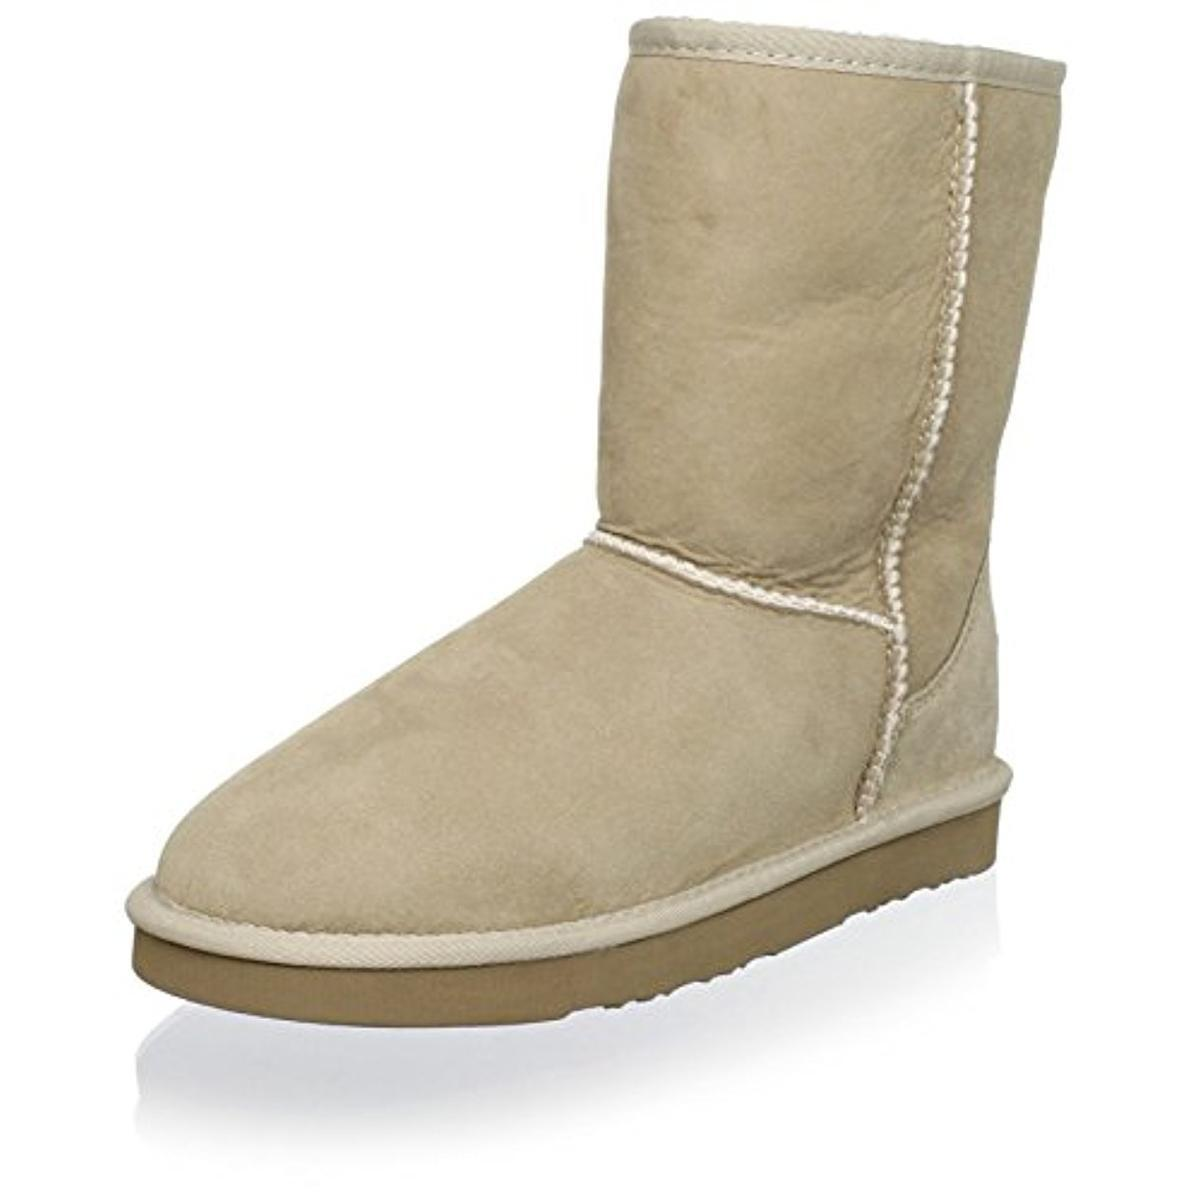 New AUSTRALIA LUXE COLLECTIVE Tan Beige Sand Cosy Short Shearling Boot Bootie 11